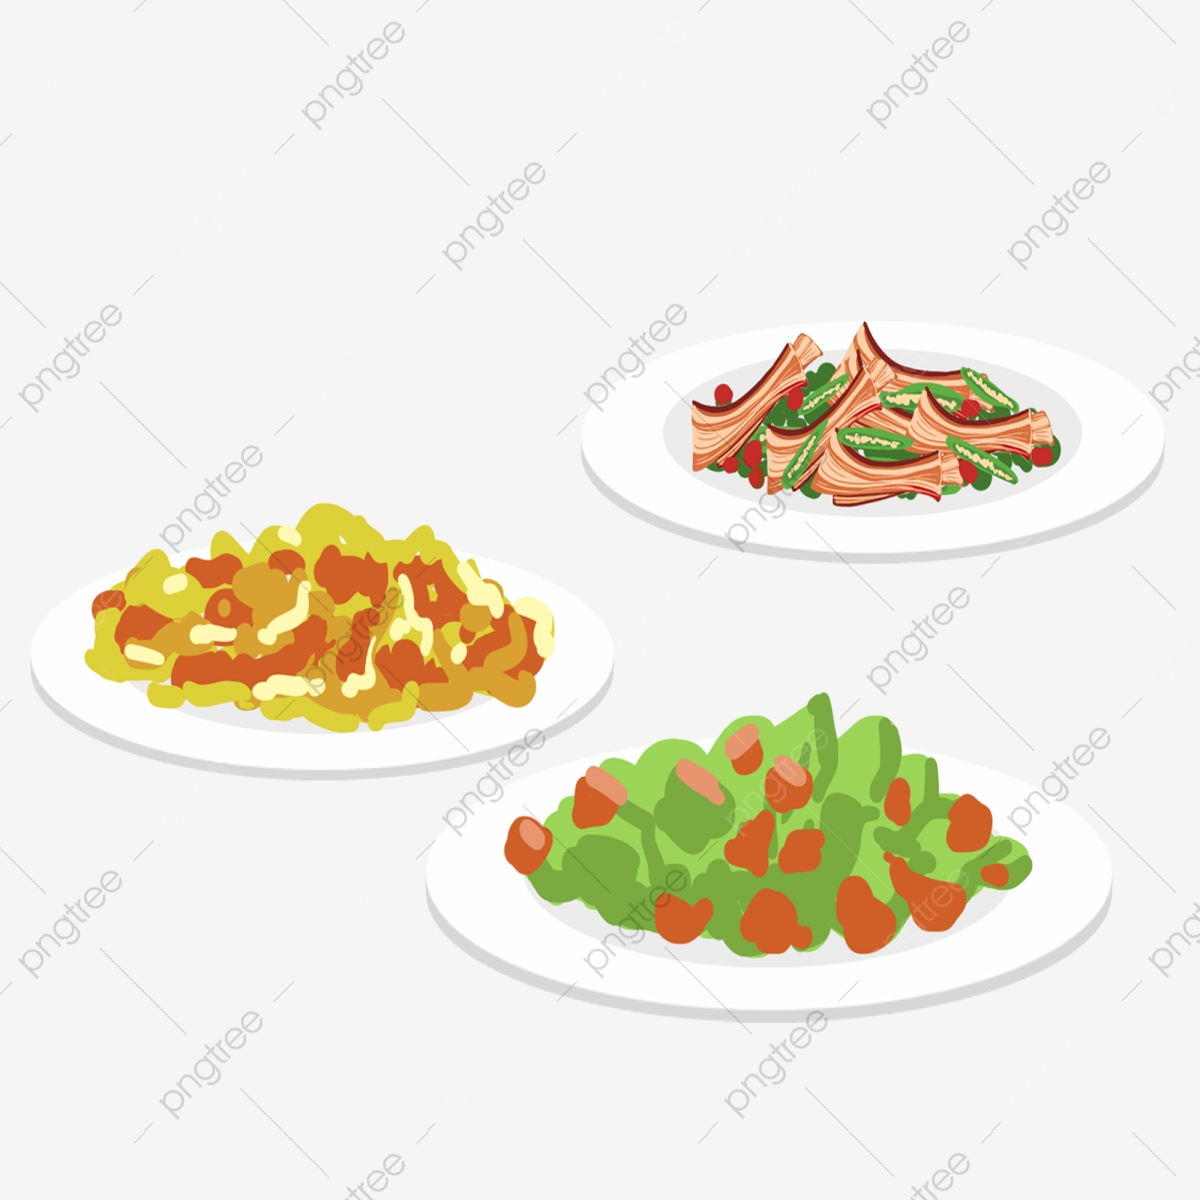 18099 dinner plate with food clipart | Public domain vectors